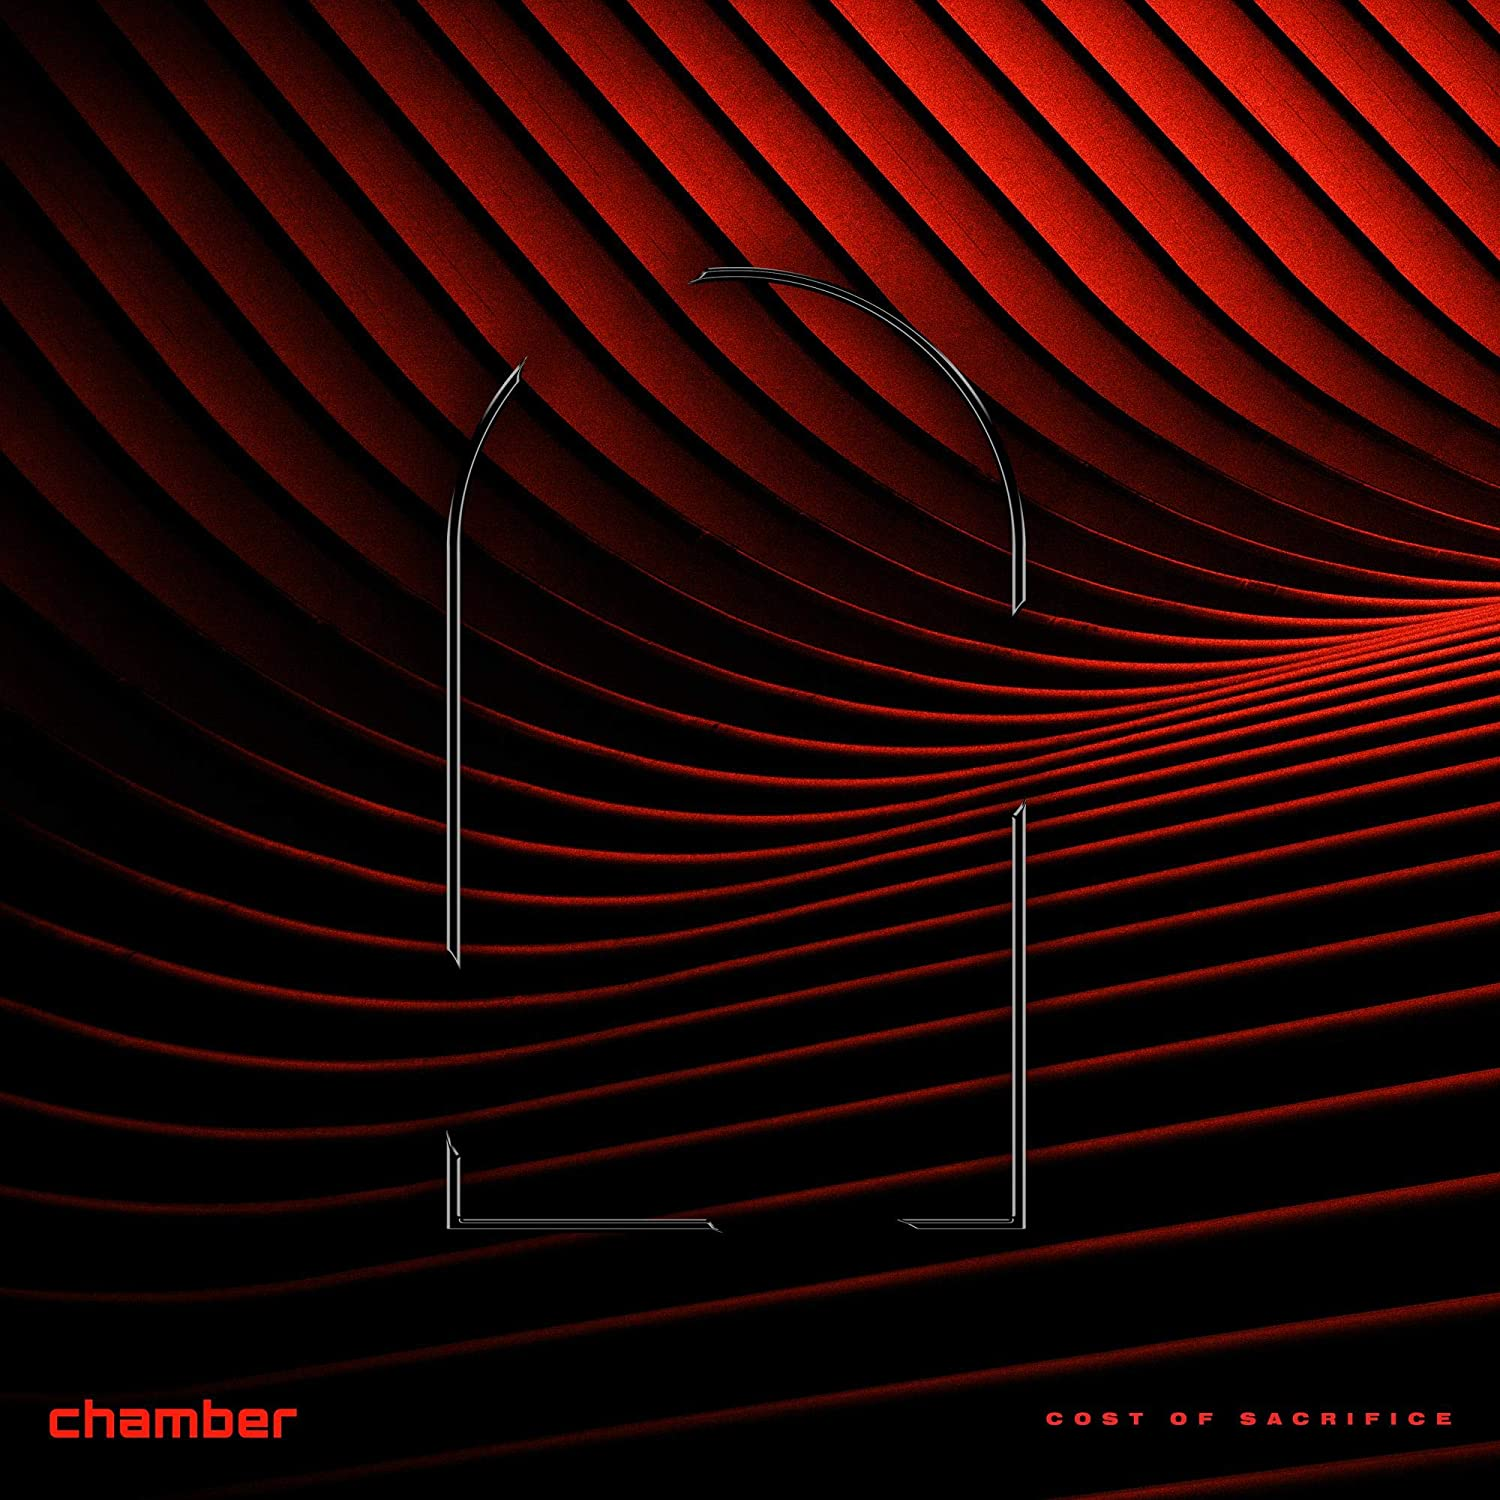 Chamber - Cost Of Sacrifice [Import LP]